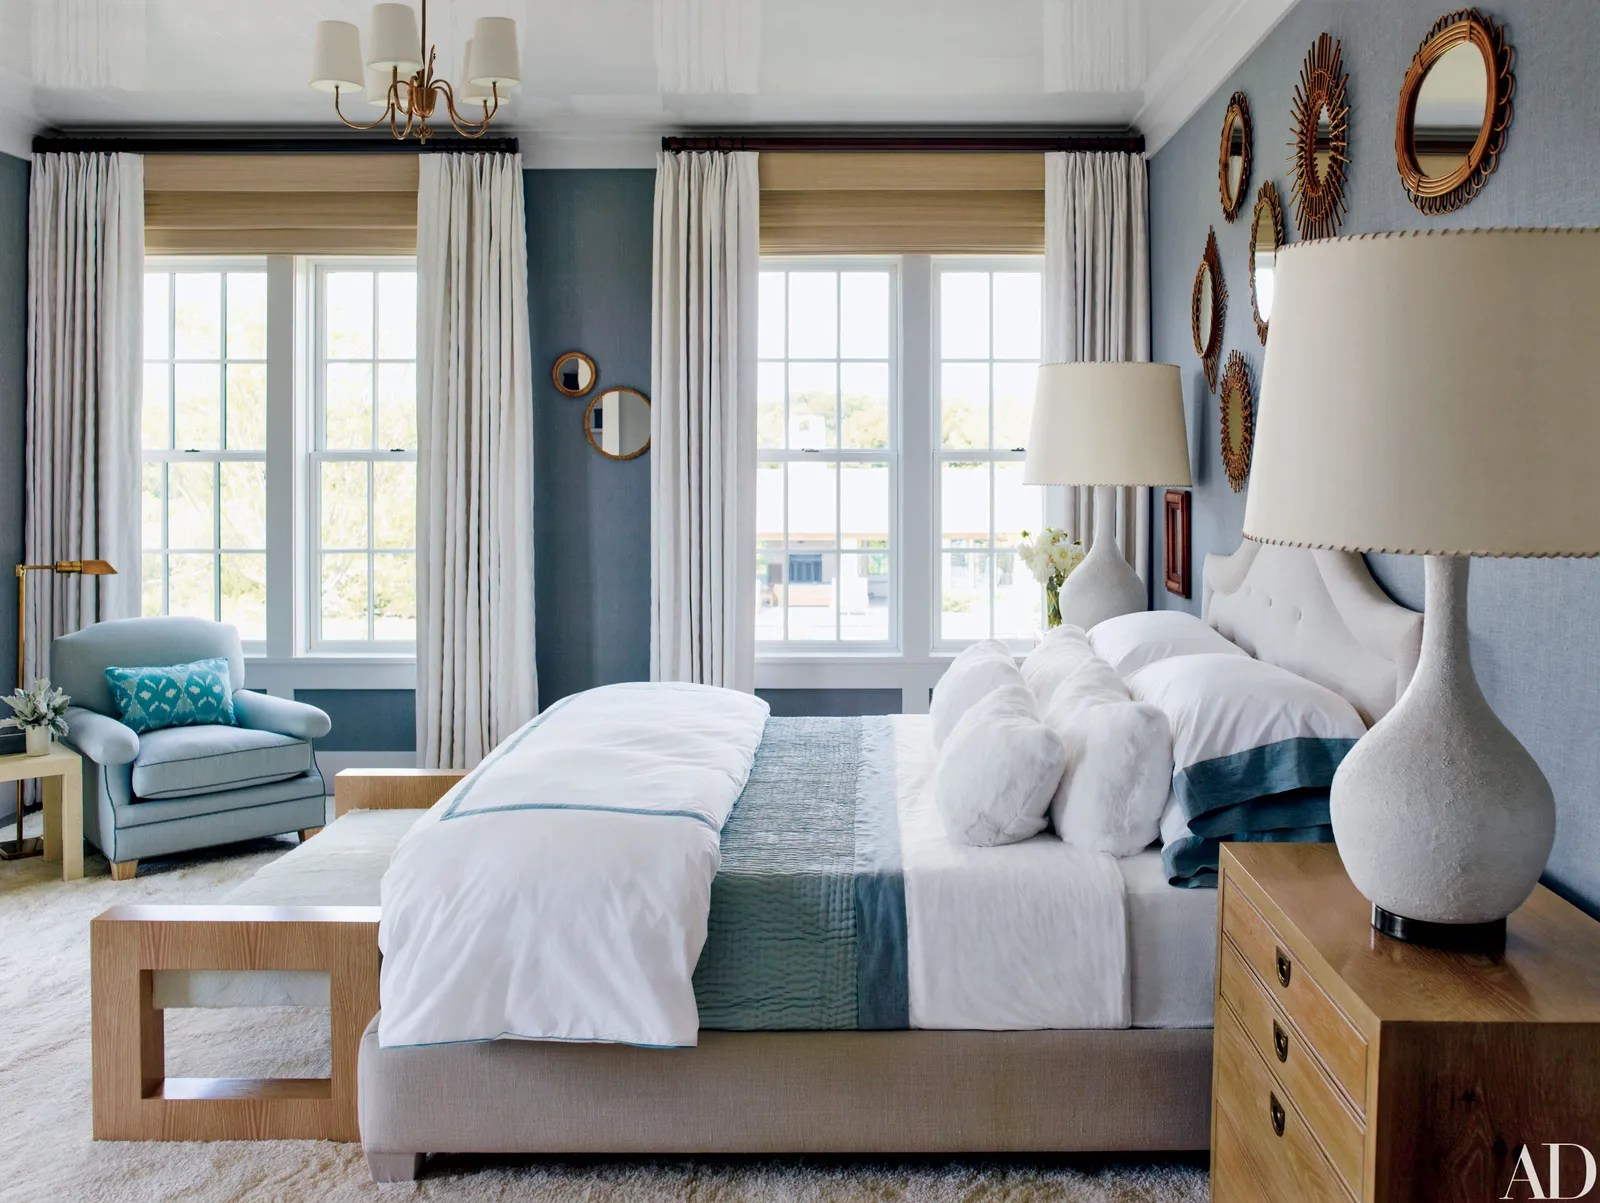 Decorating Ideas for a Welcoming Guest Room ... on Room Decor Ideas  id=46352